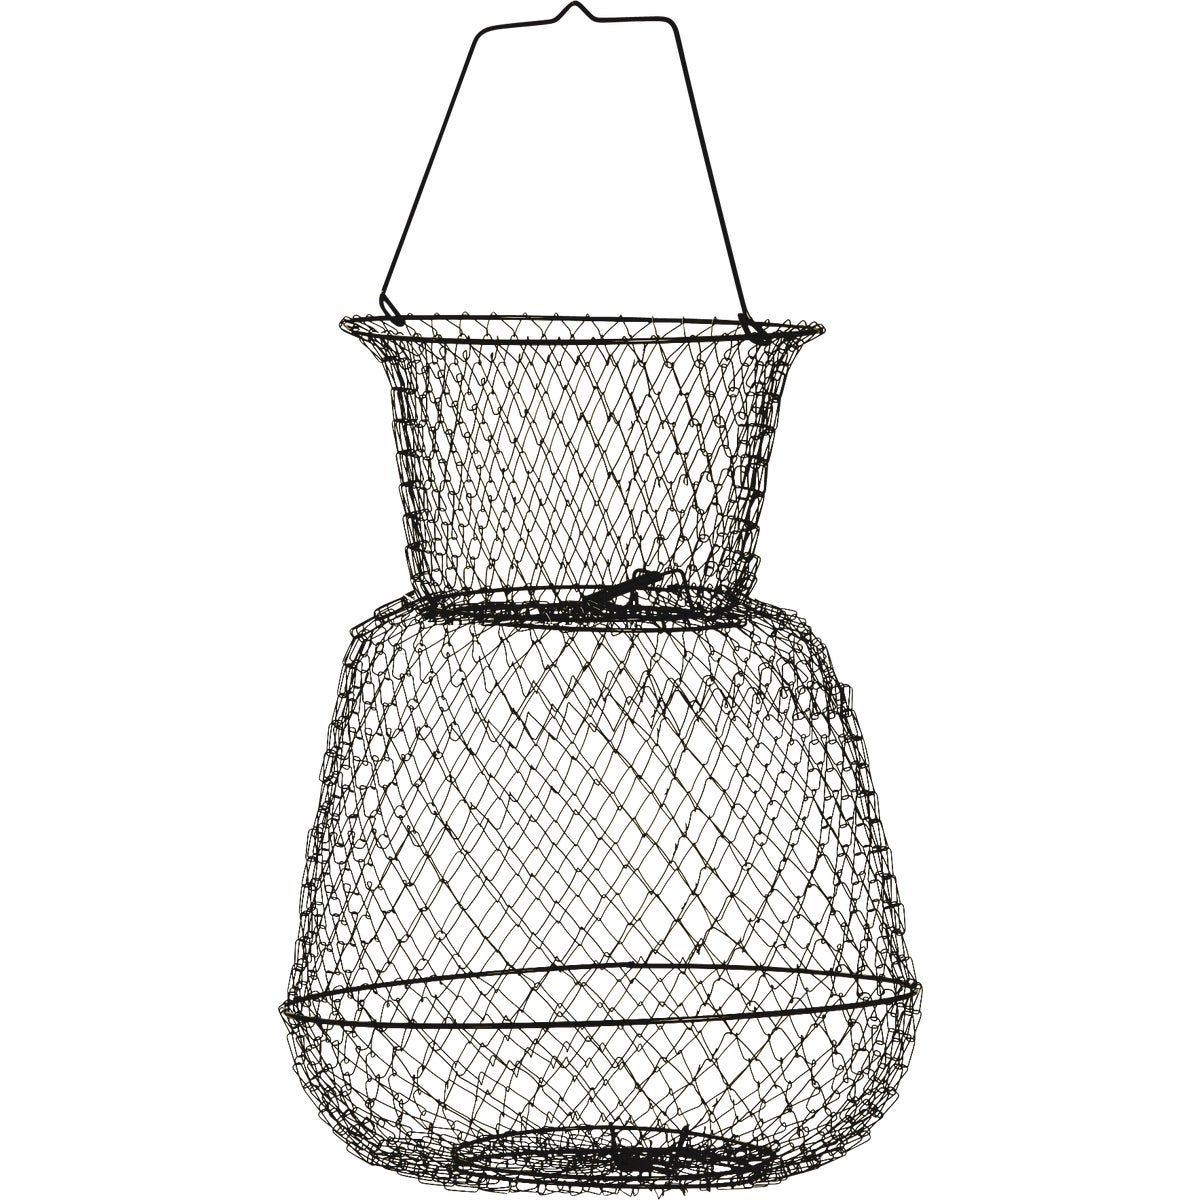 WIRE FISH BASKET - B666 by South Bend Sptg Good